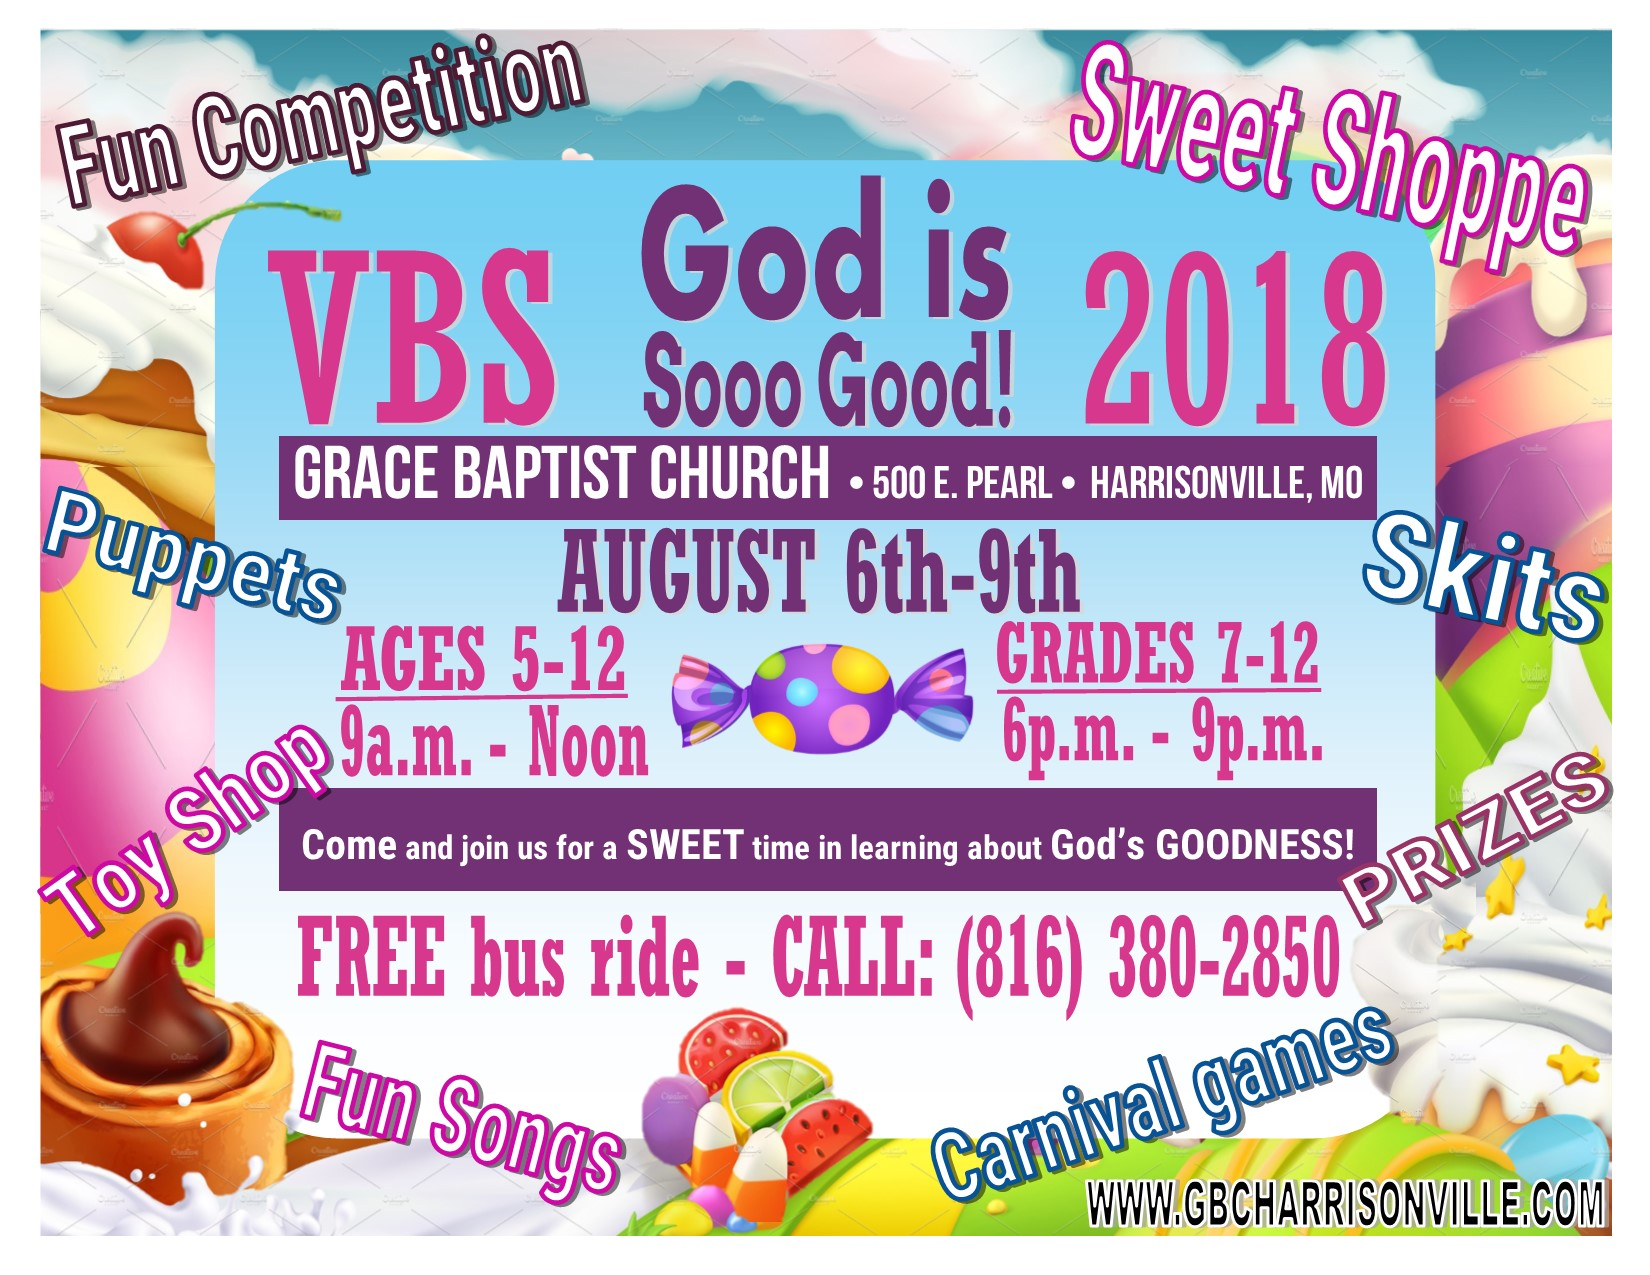 2018-VBS-GOD-IS-SO-GOOD-POSTER-FLYER-YARD-SIGN-FULL-SIZE